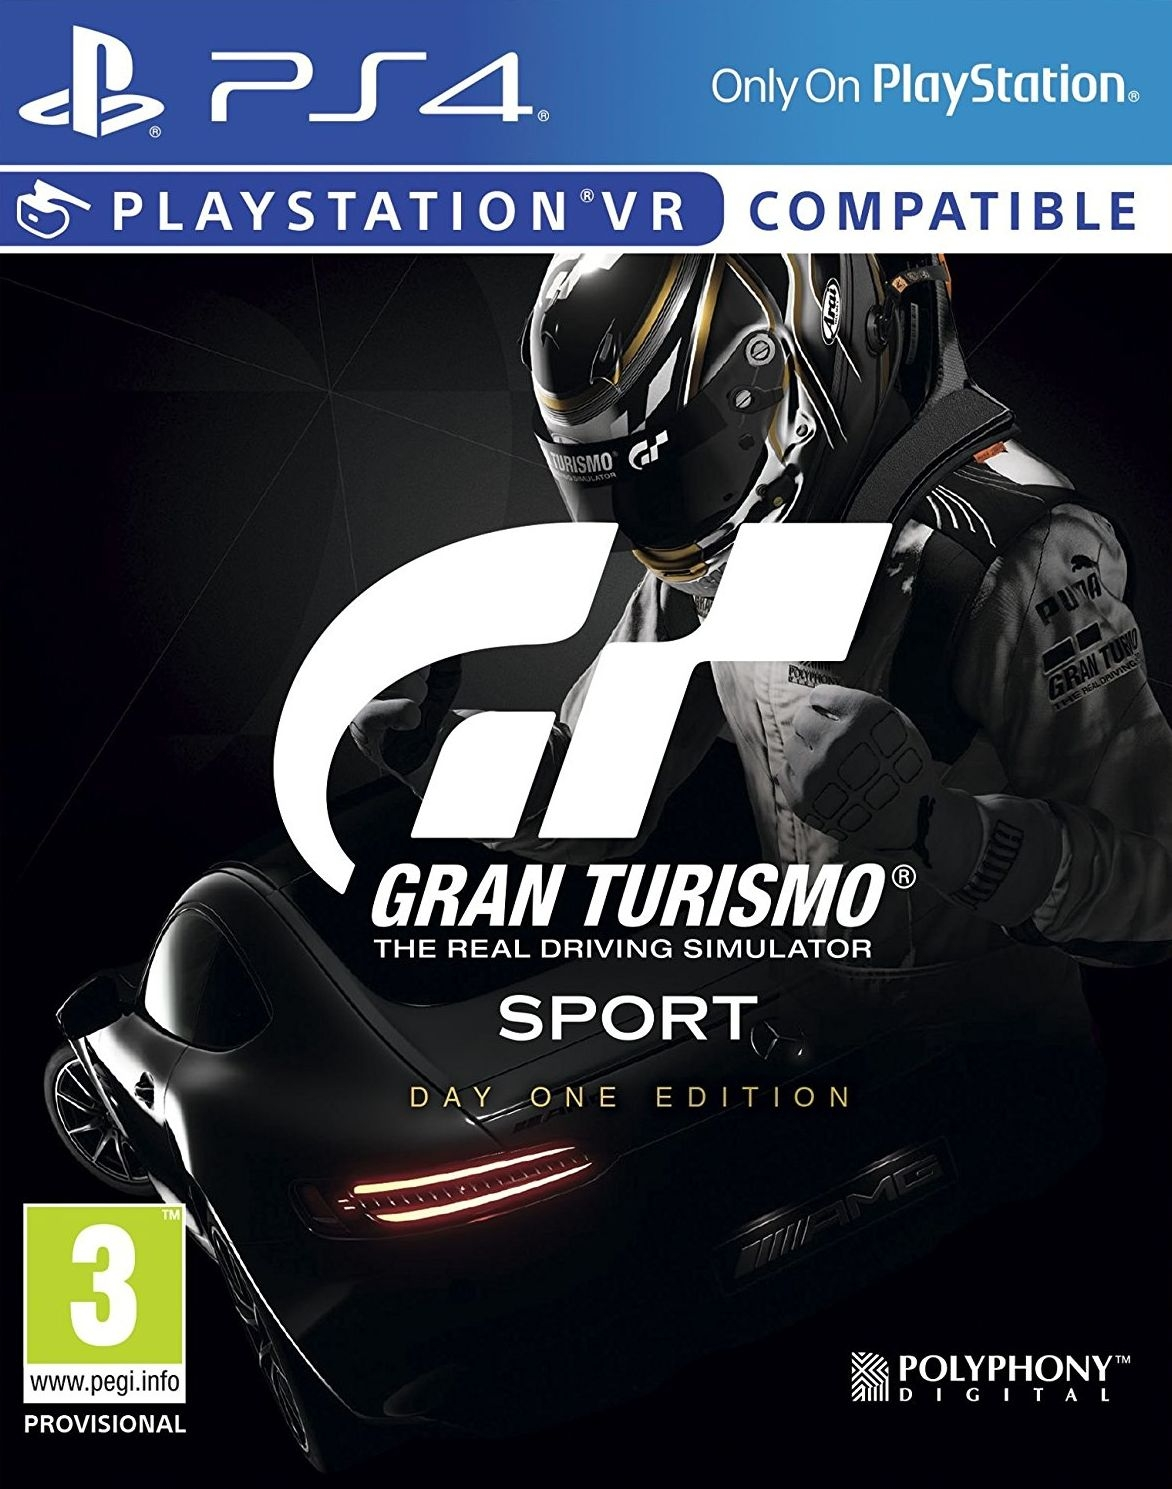 PS4 Gran Turismo Sport Day One Edition (PSVR compatible)